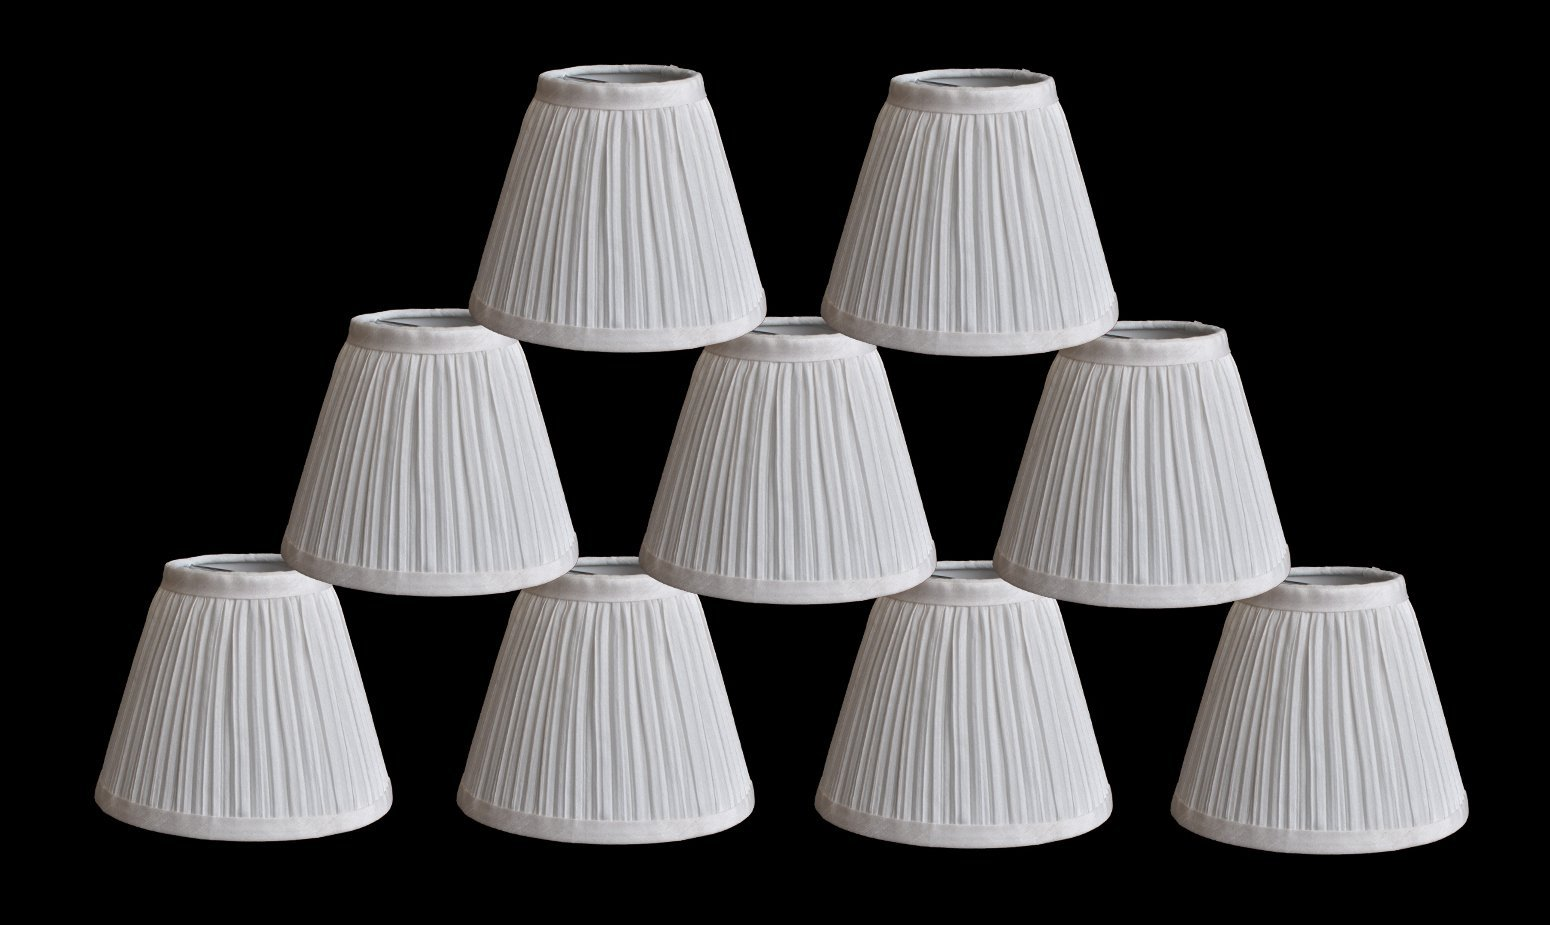 chandelier lamp shade 3 inch top by 6 inch by 5 inch random lamps. Black Bedroom Furniture Sets. Home Design Ideas